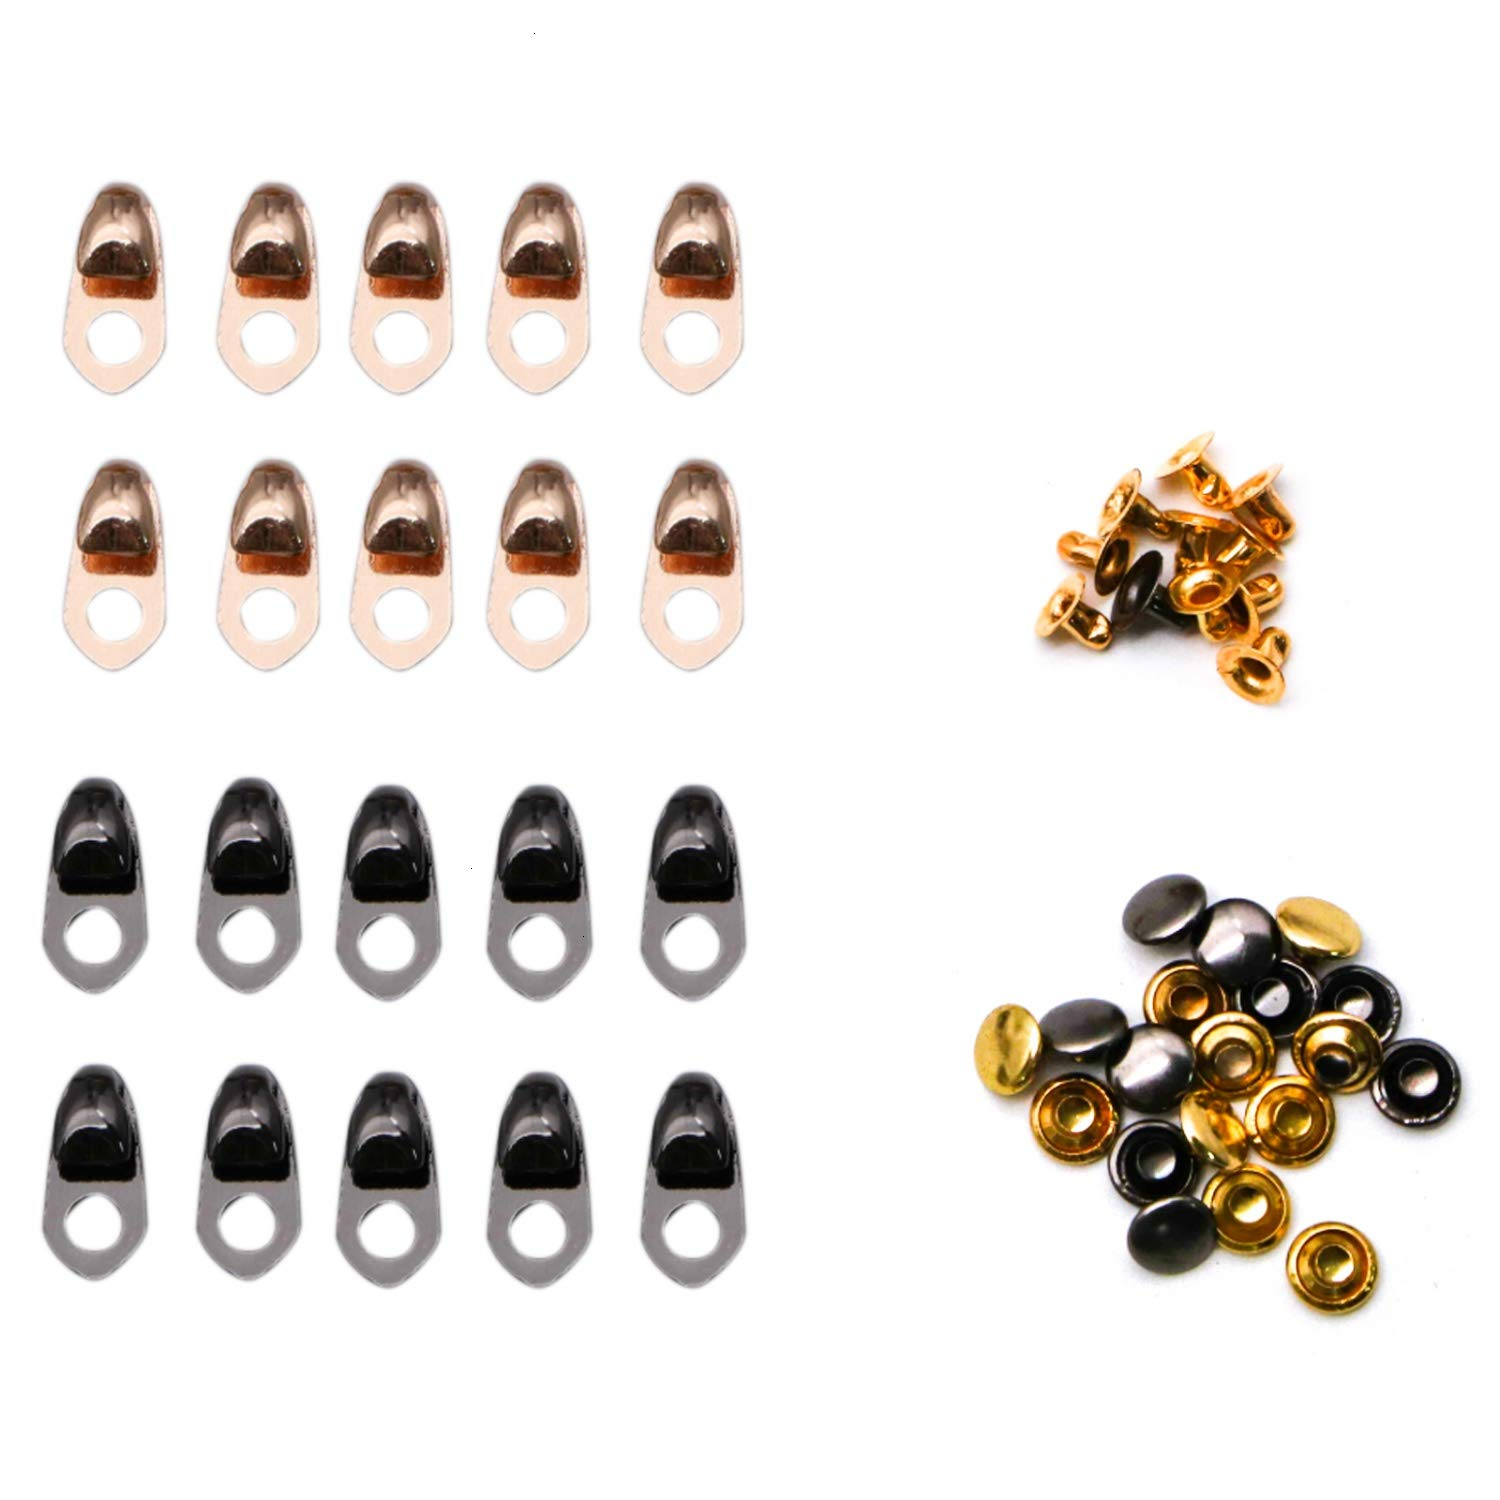 20 Set Boot Hooks Lace Fittings with Rivets Shoelace Buckles​ for Repair Camp Hike Climb Accessories Gun Black and Gold Vumdua Boot Lace Hooks